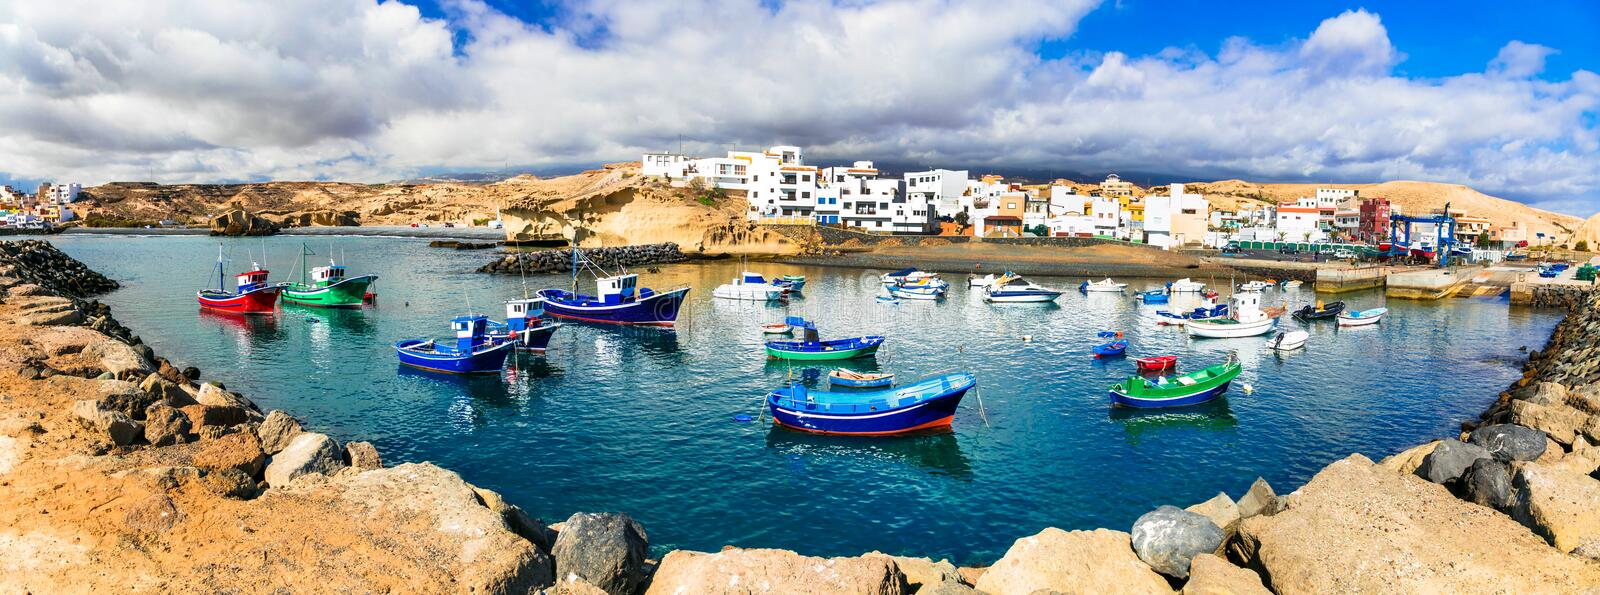 Traditional fishing village in Tenerife island - picturesque San stock photos